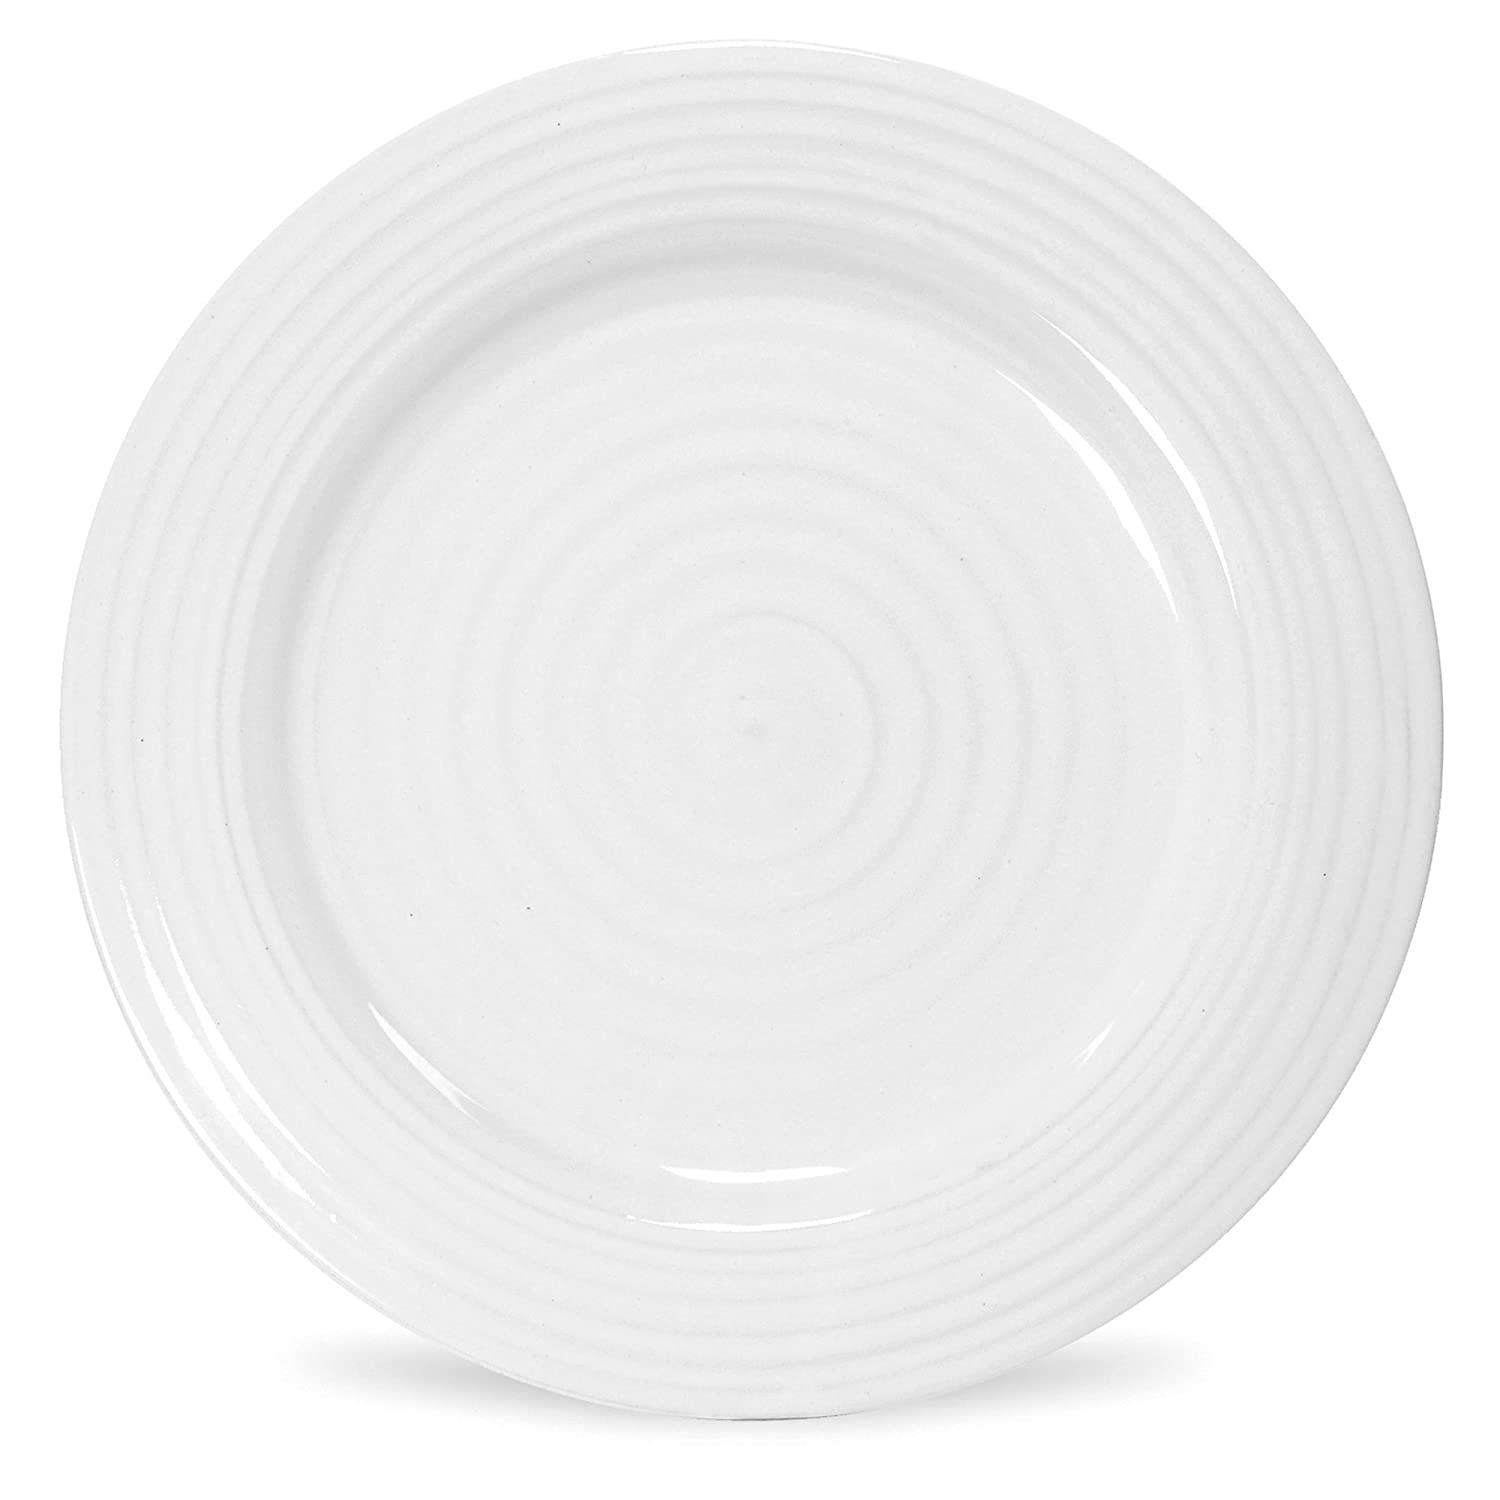 Portmeirion Sophie Conran White Luncheon Plate, Set of 4